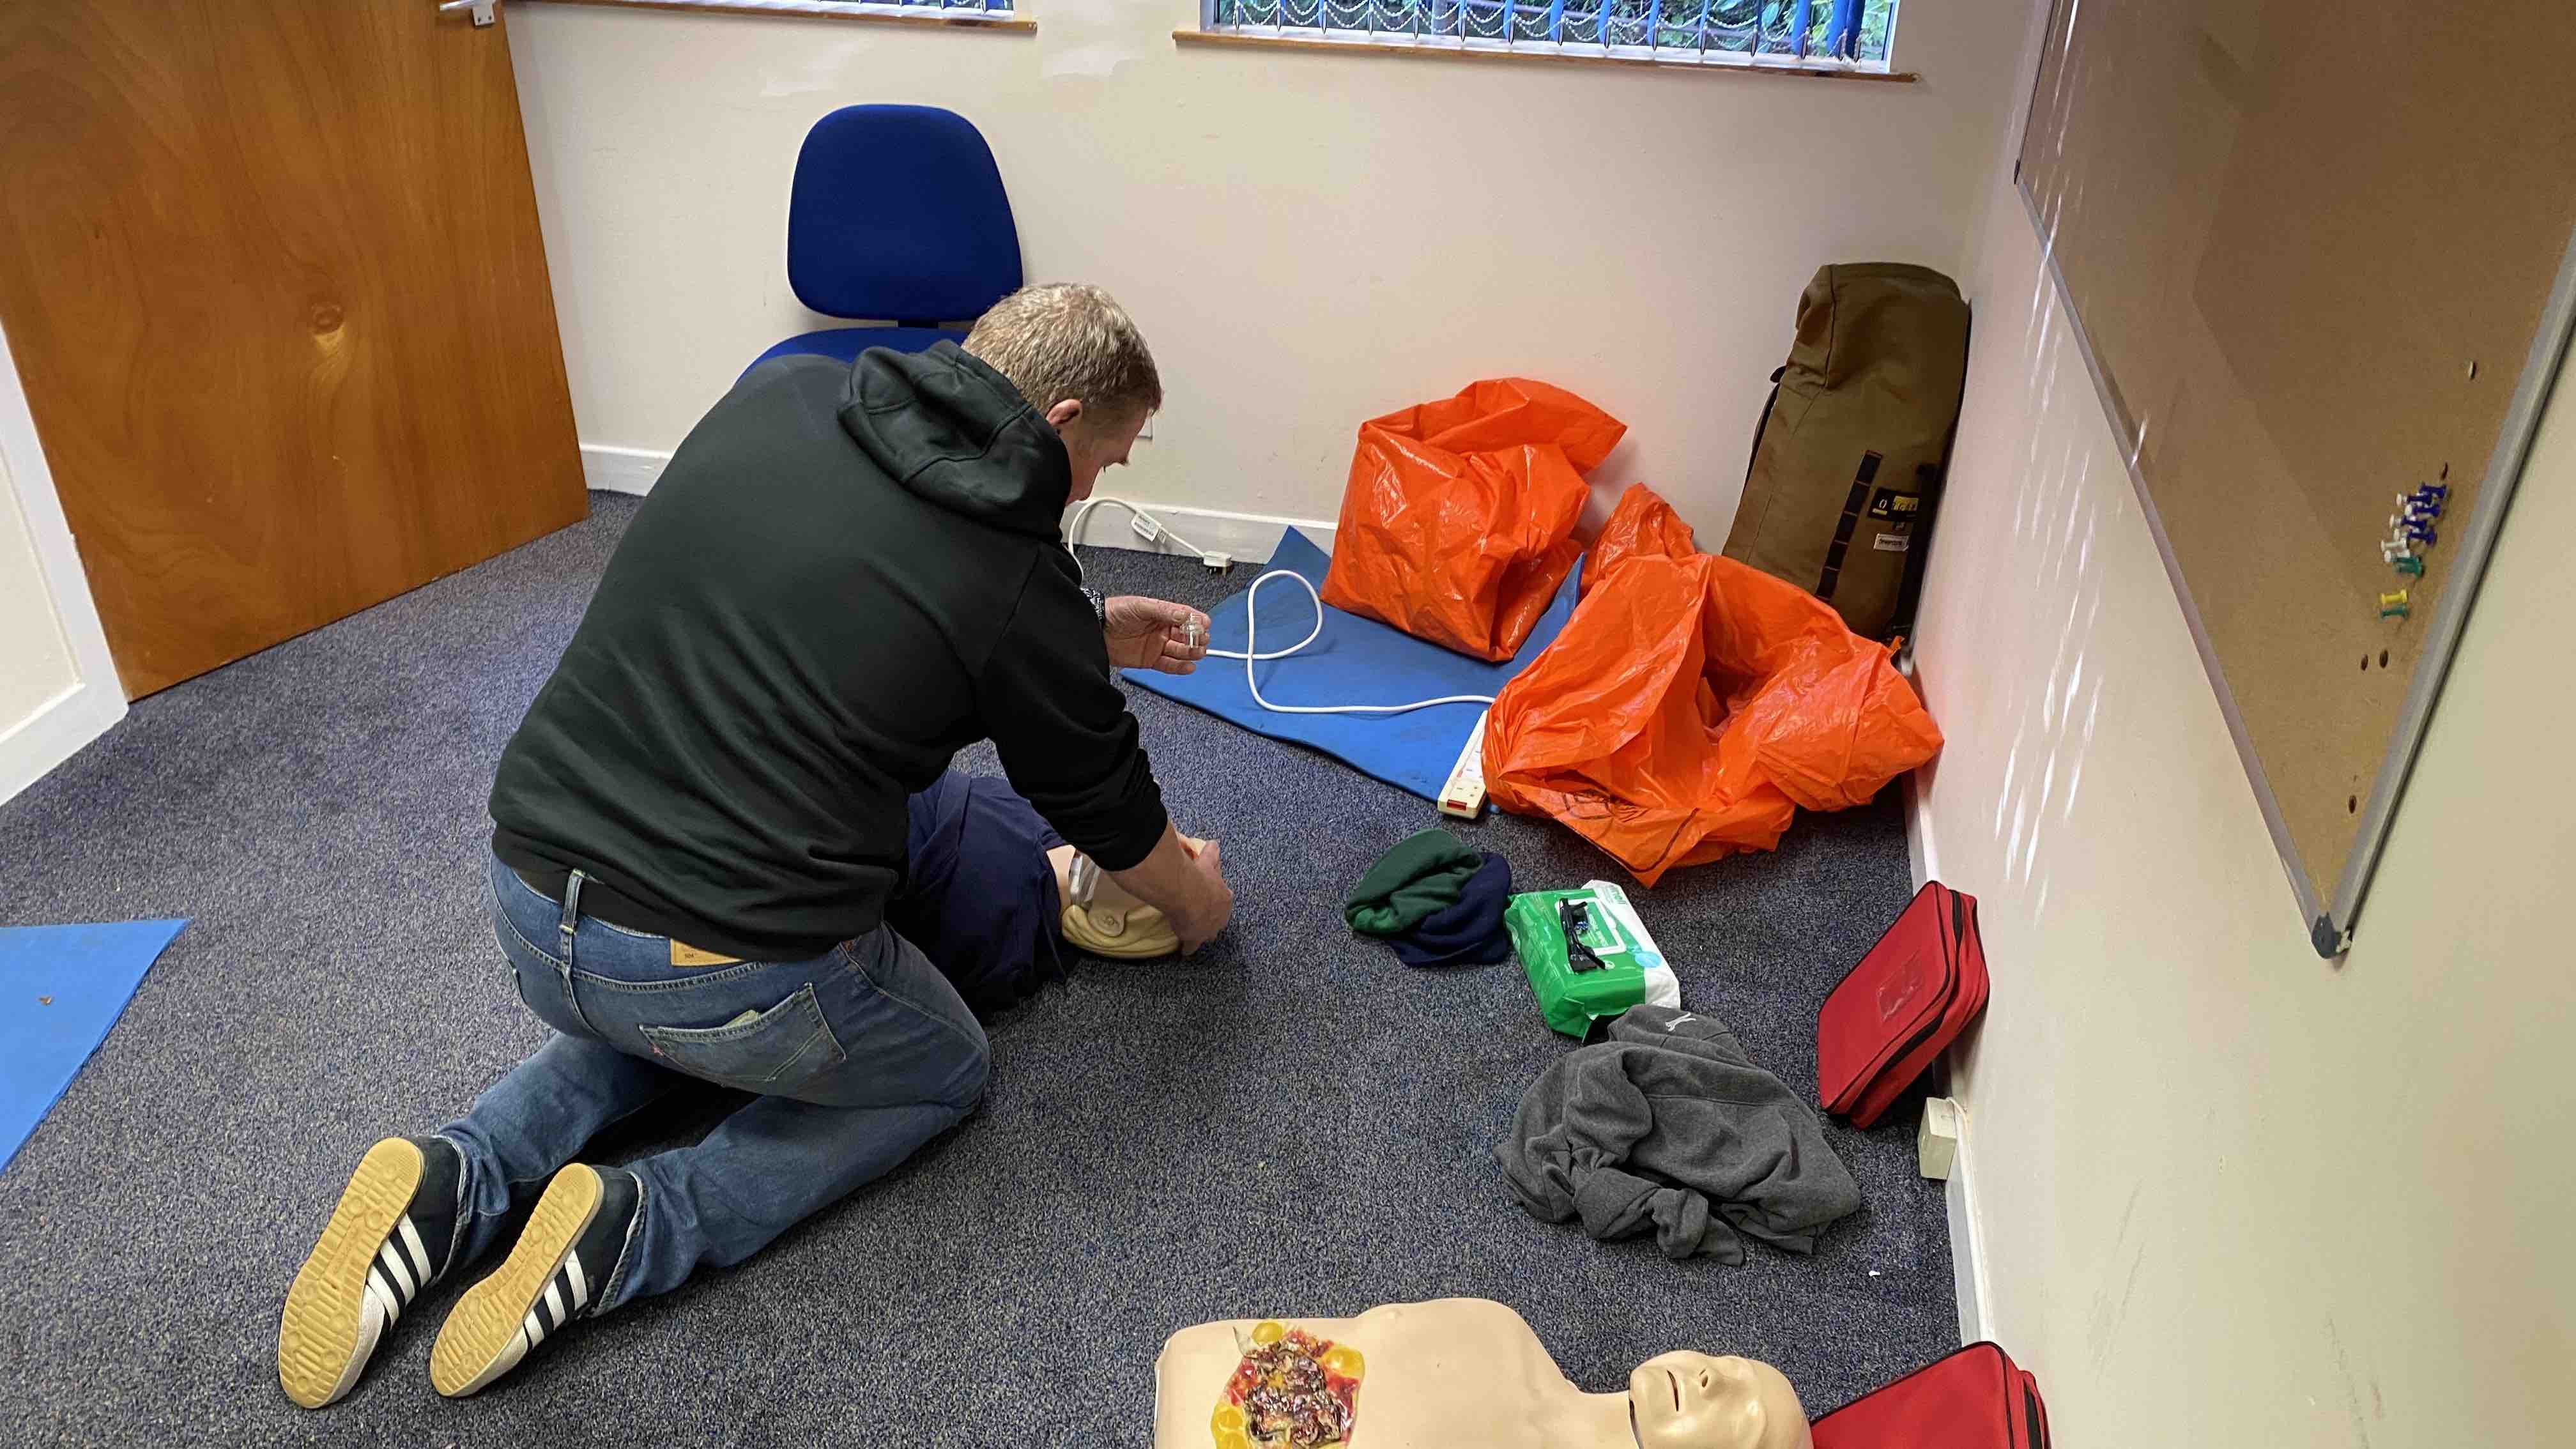 First Aid training in your workplace